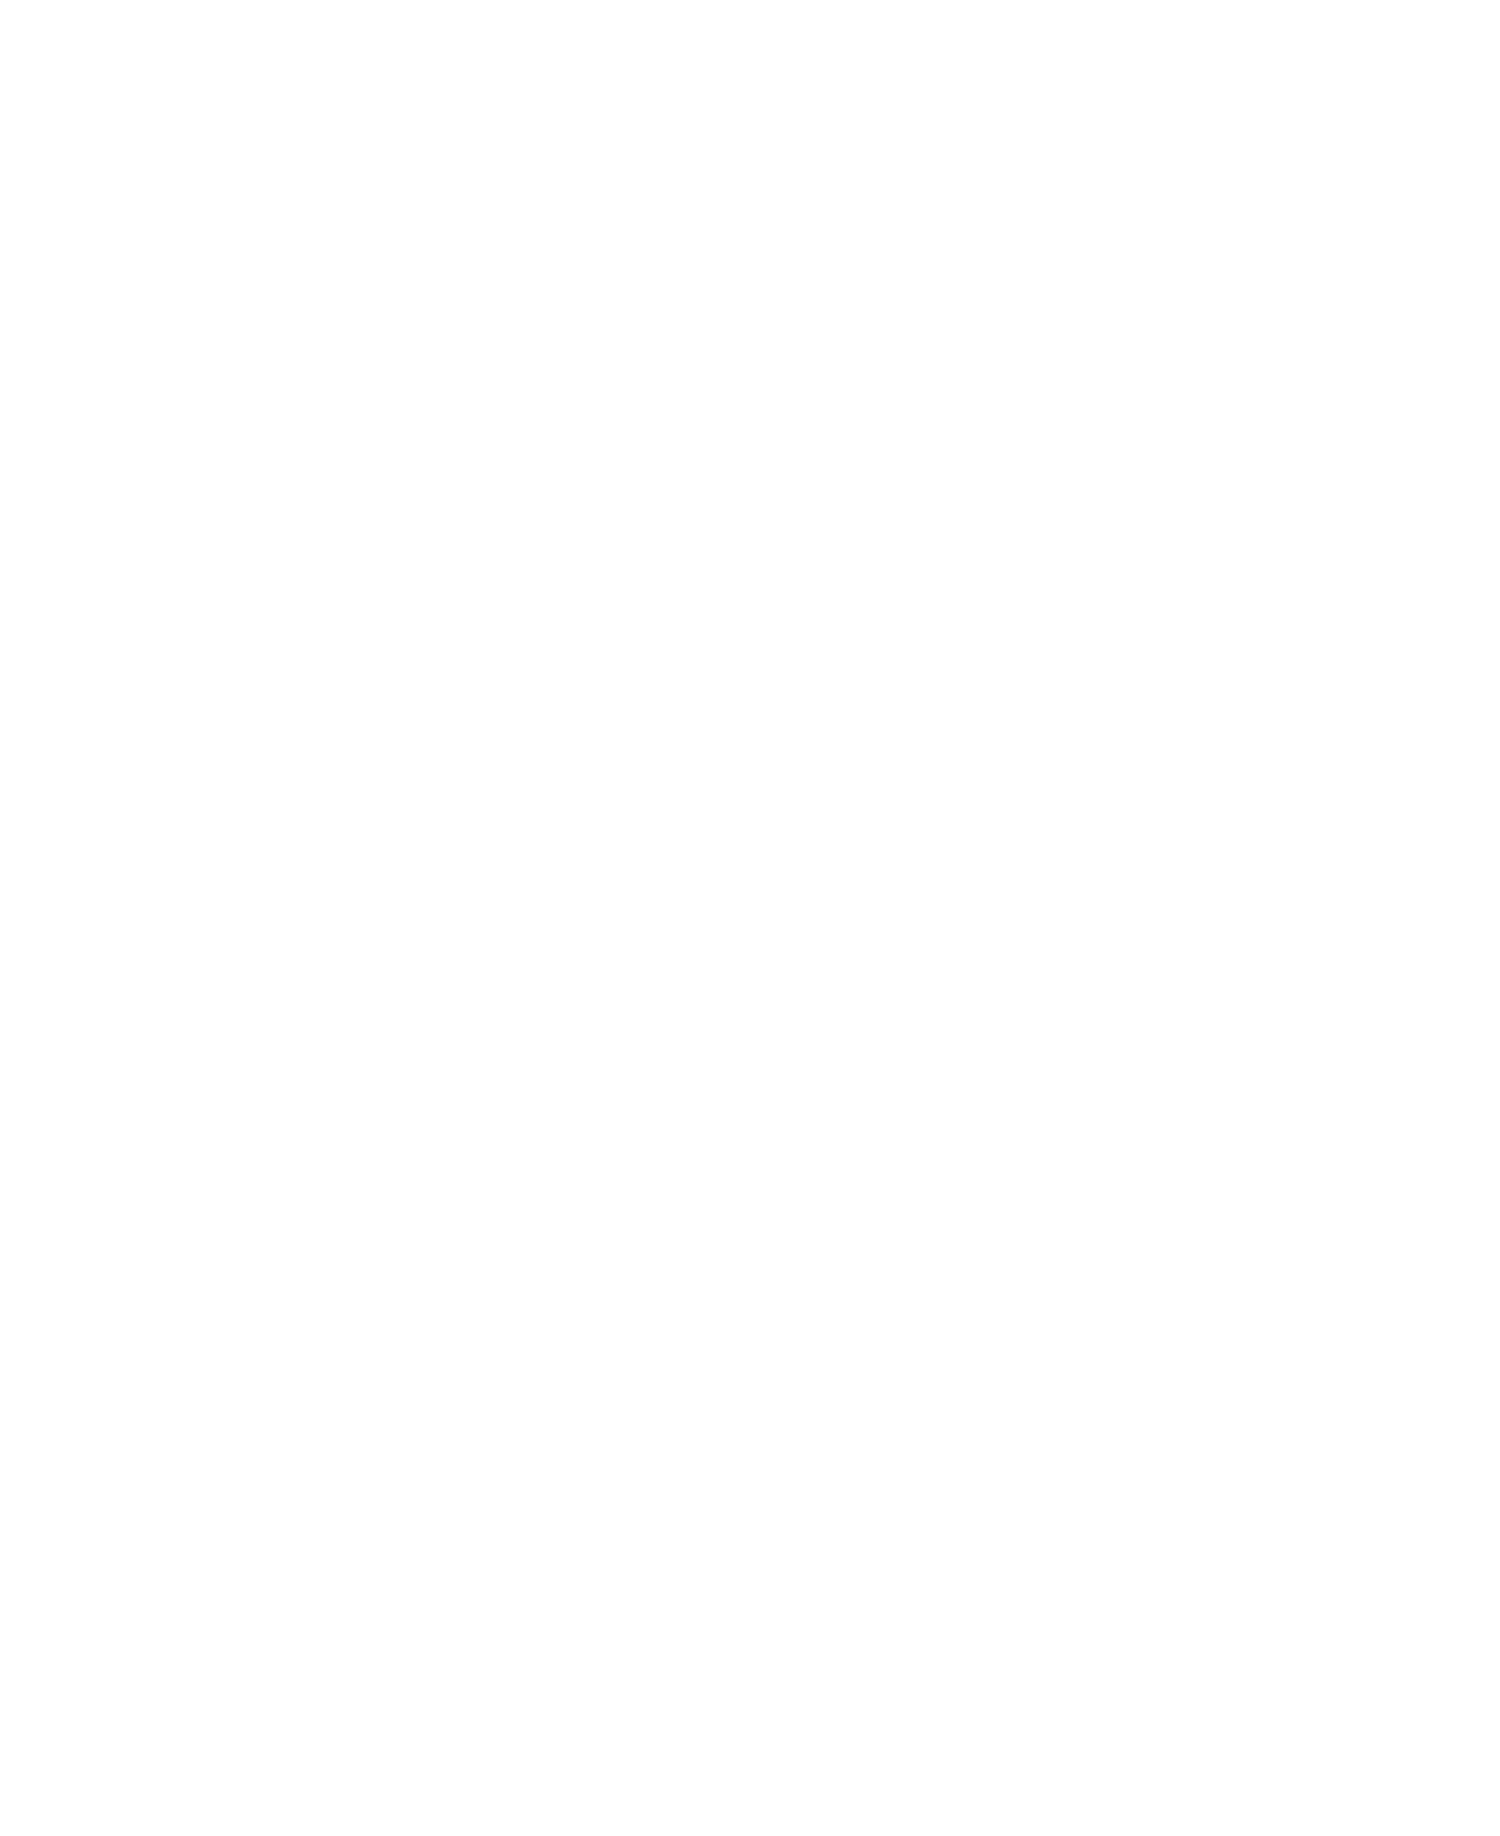 Penny Black Construction